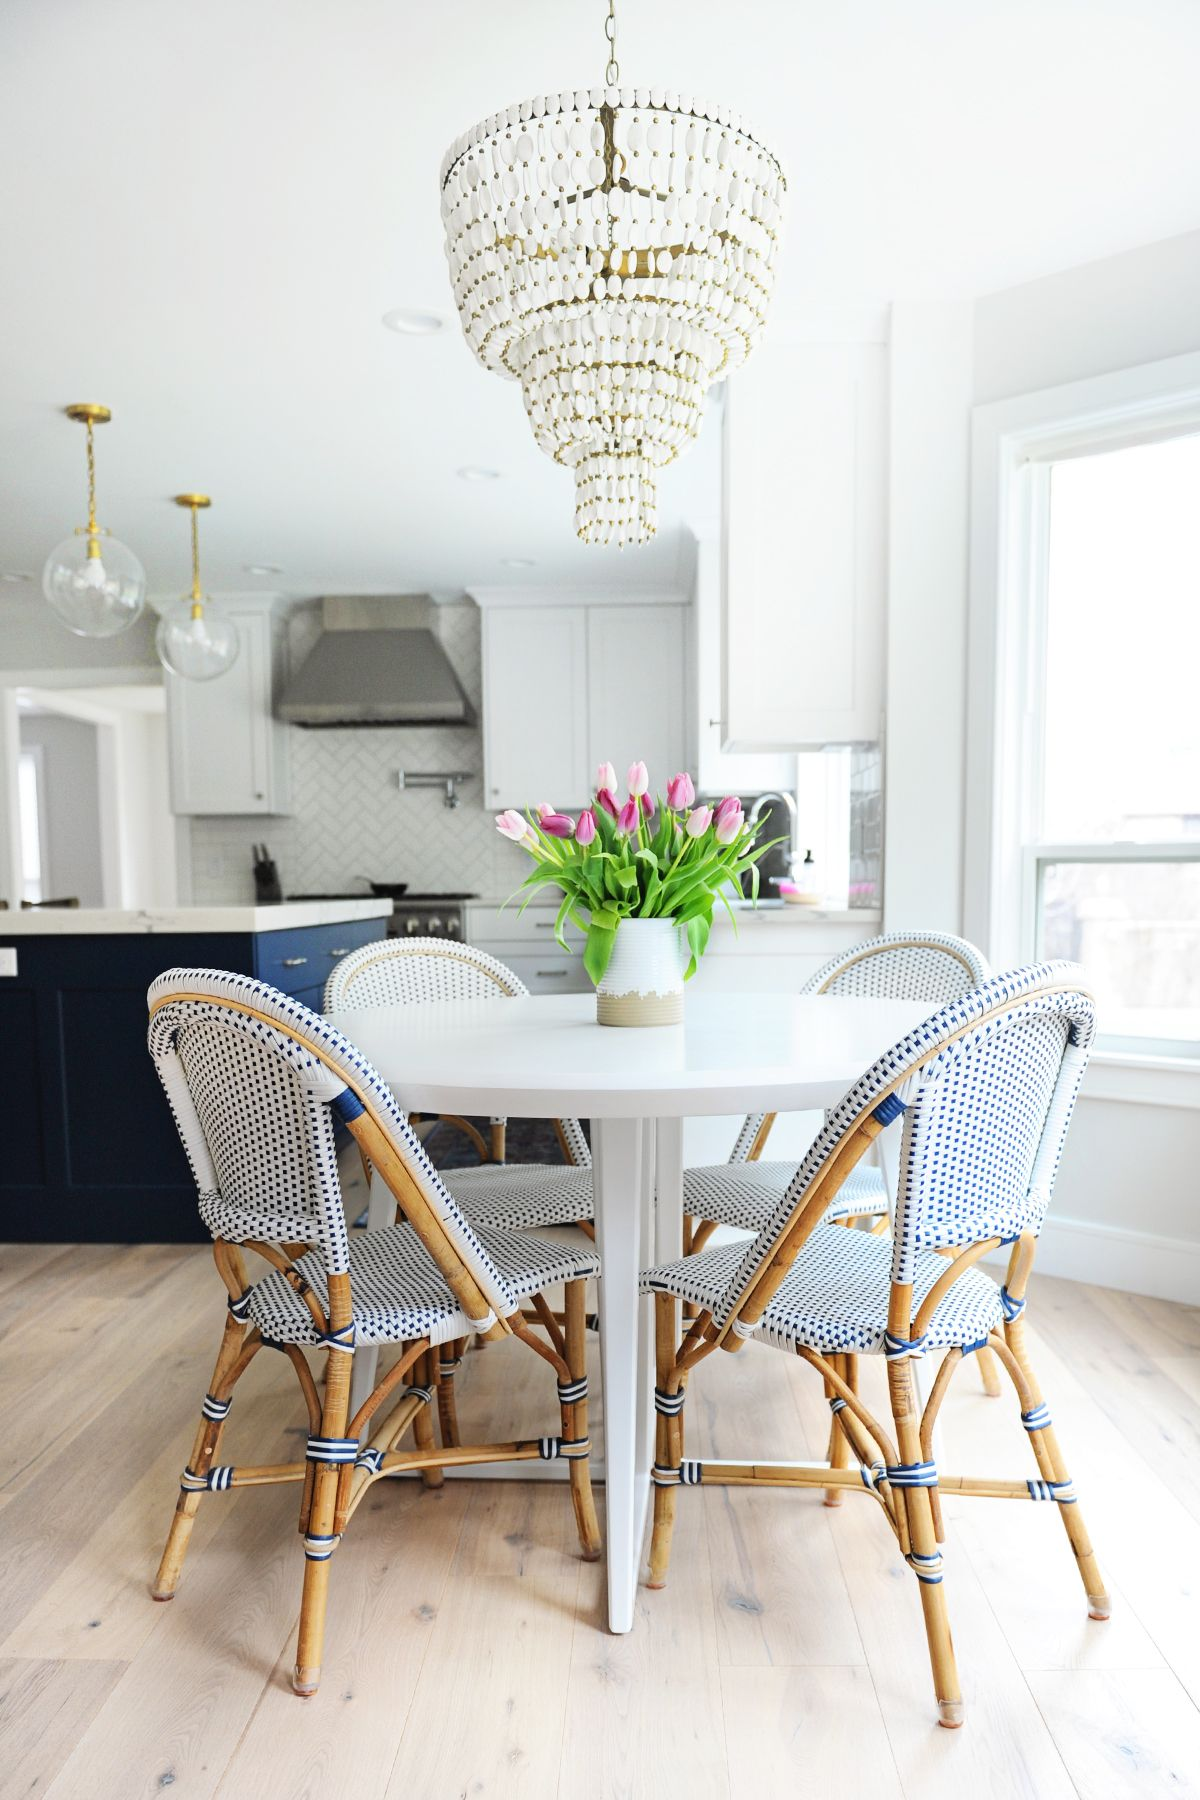 10 of the prettiest breakfast nook ideas homegoods enthusiasts rh pinterest com